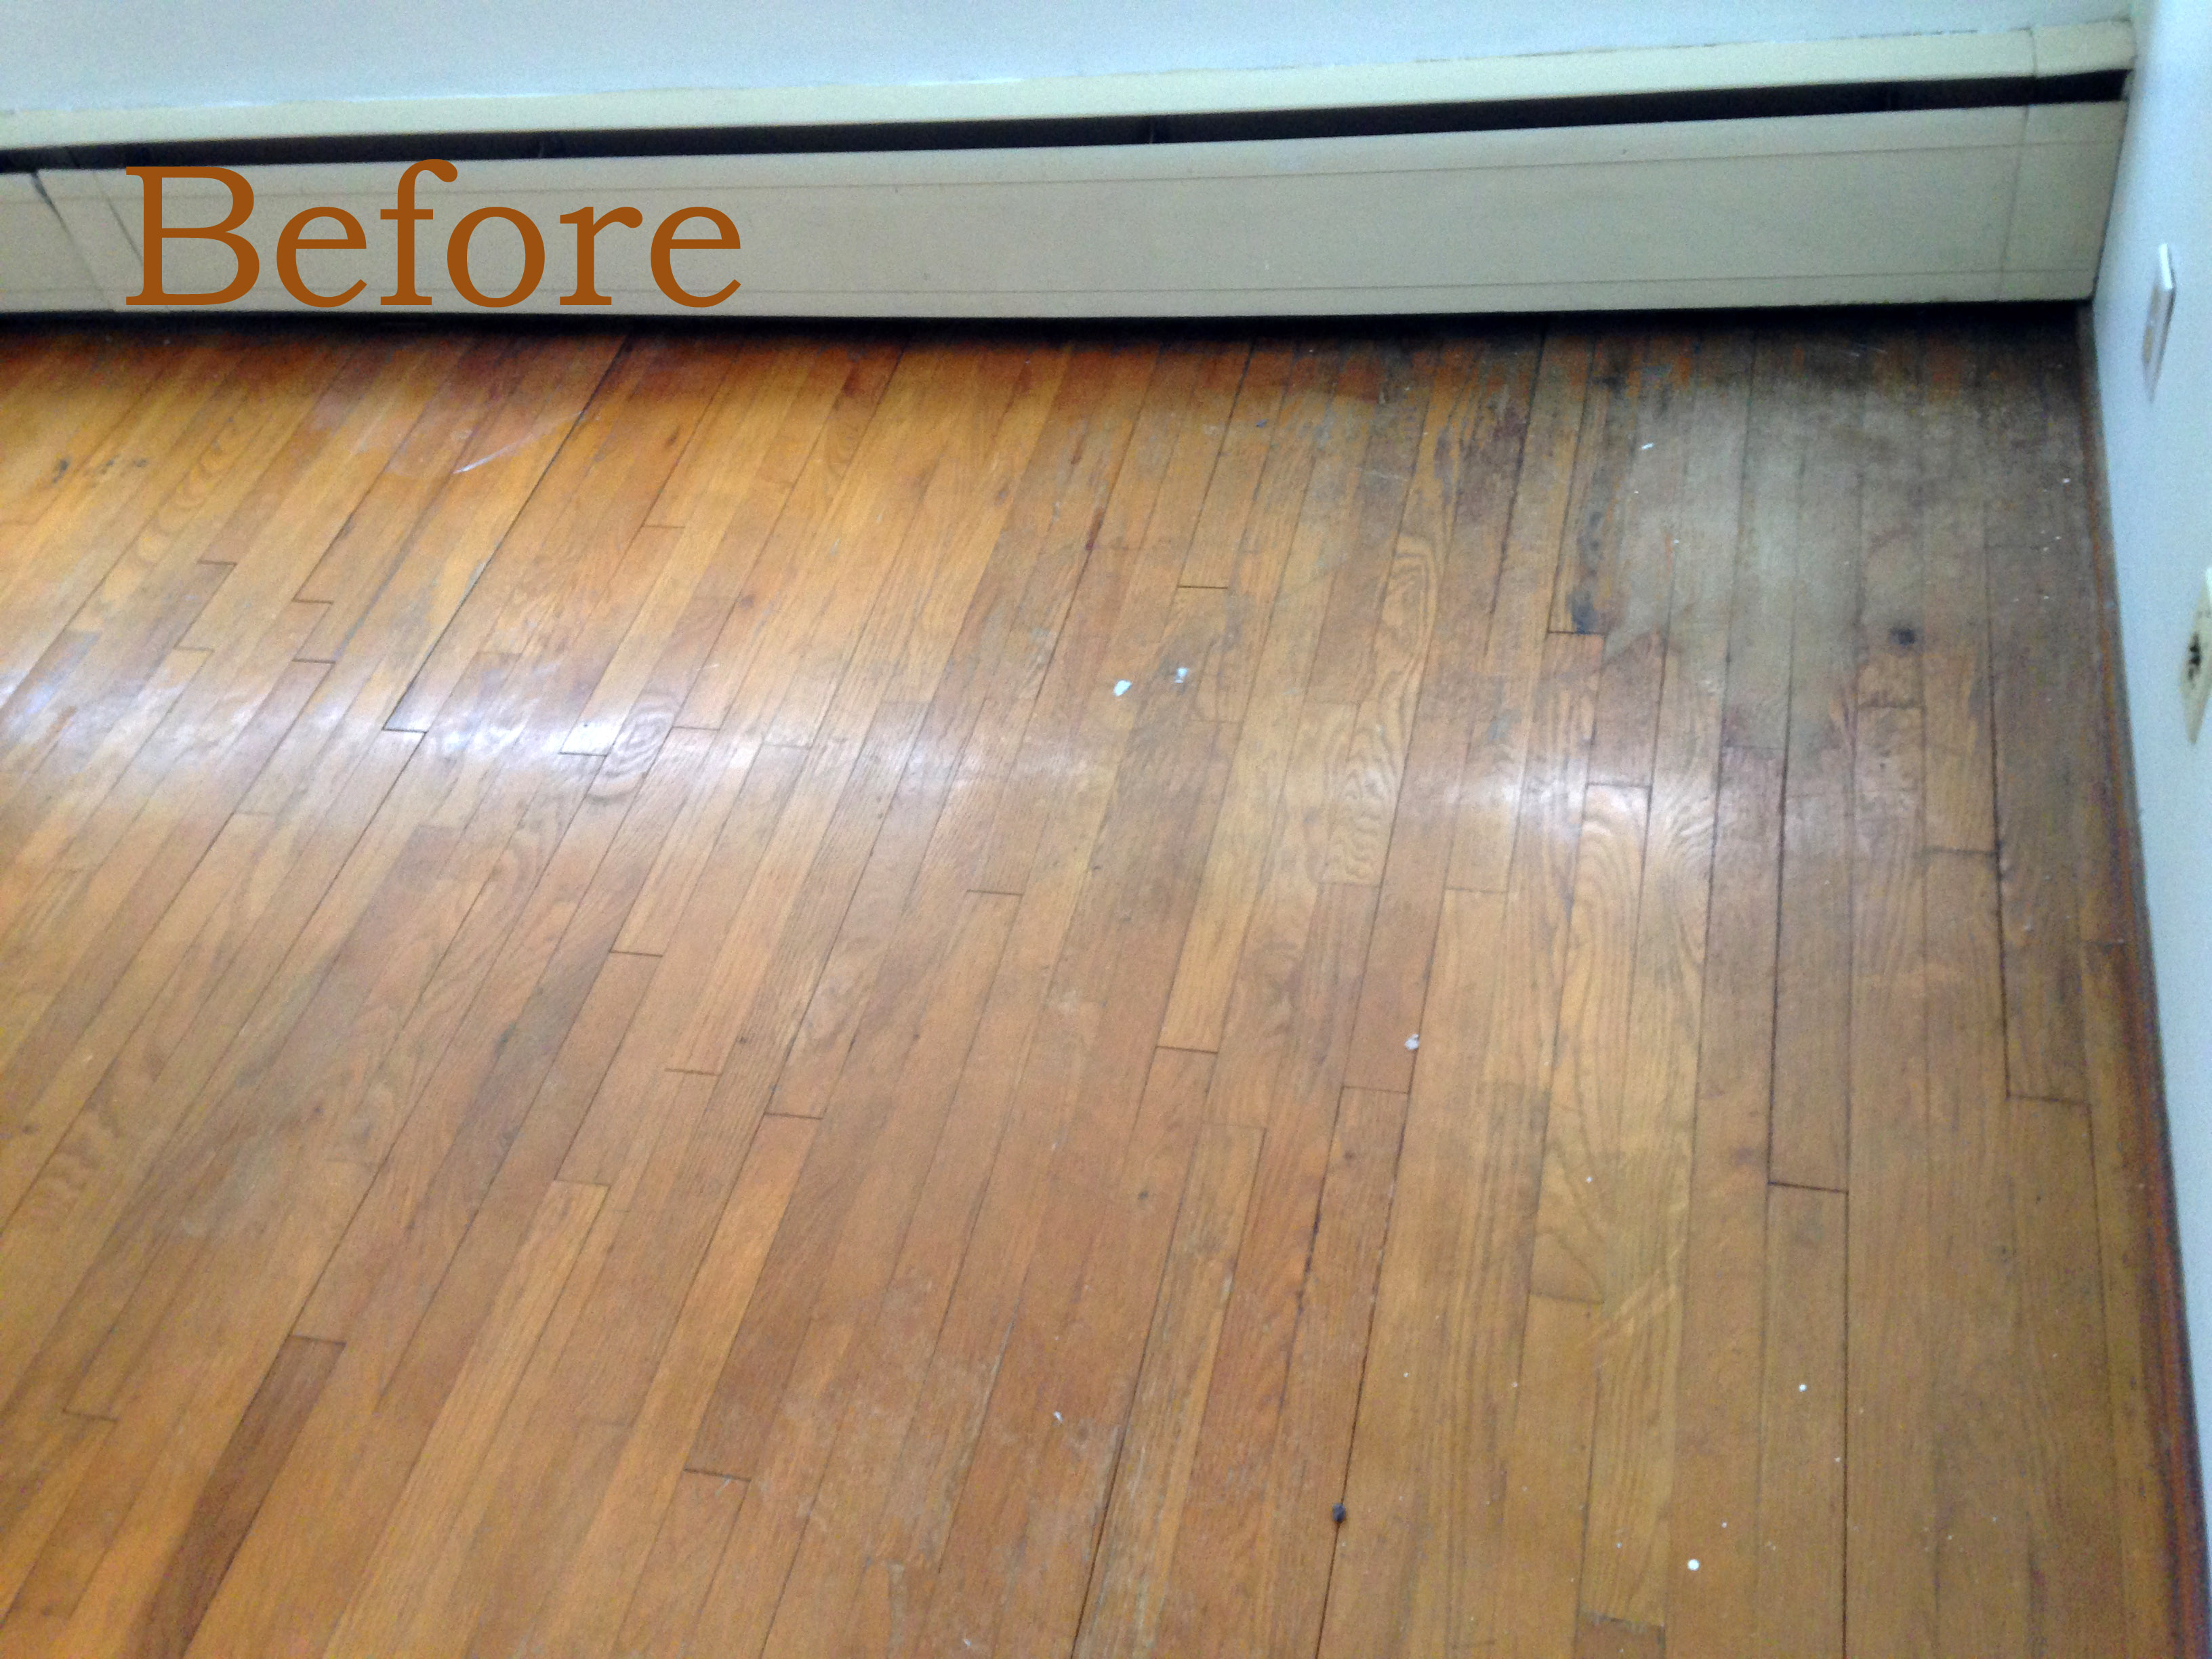 Captivating Hardwood Floor Refinishing U0026 Installation. Victoria B.C.